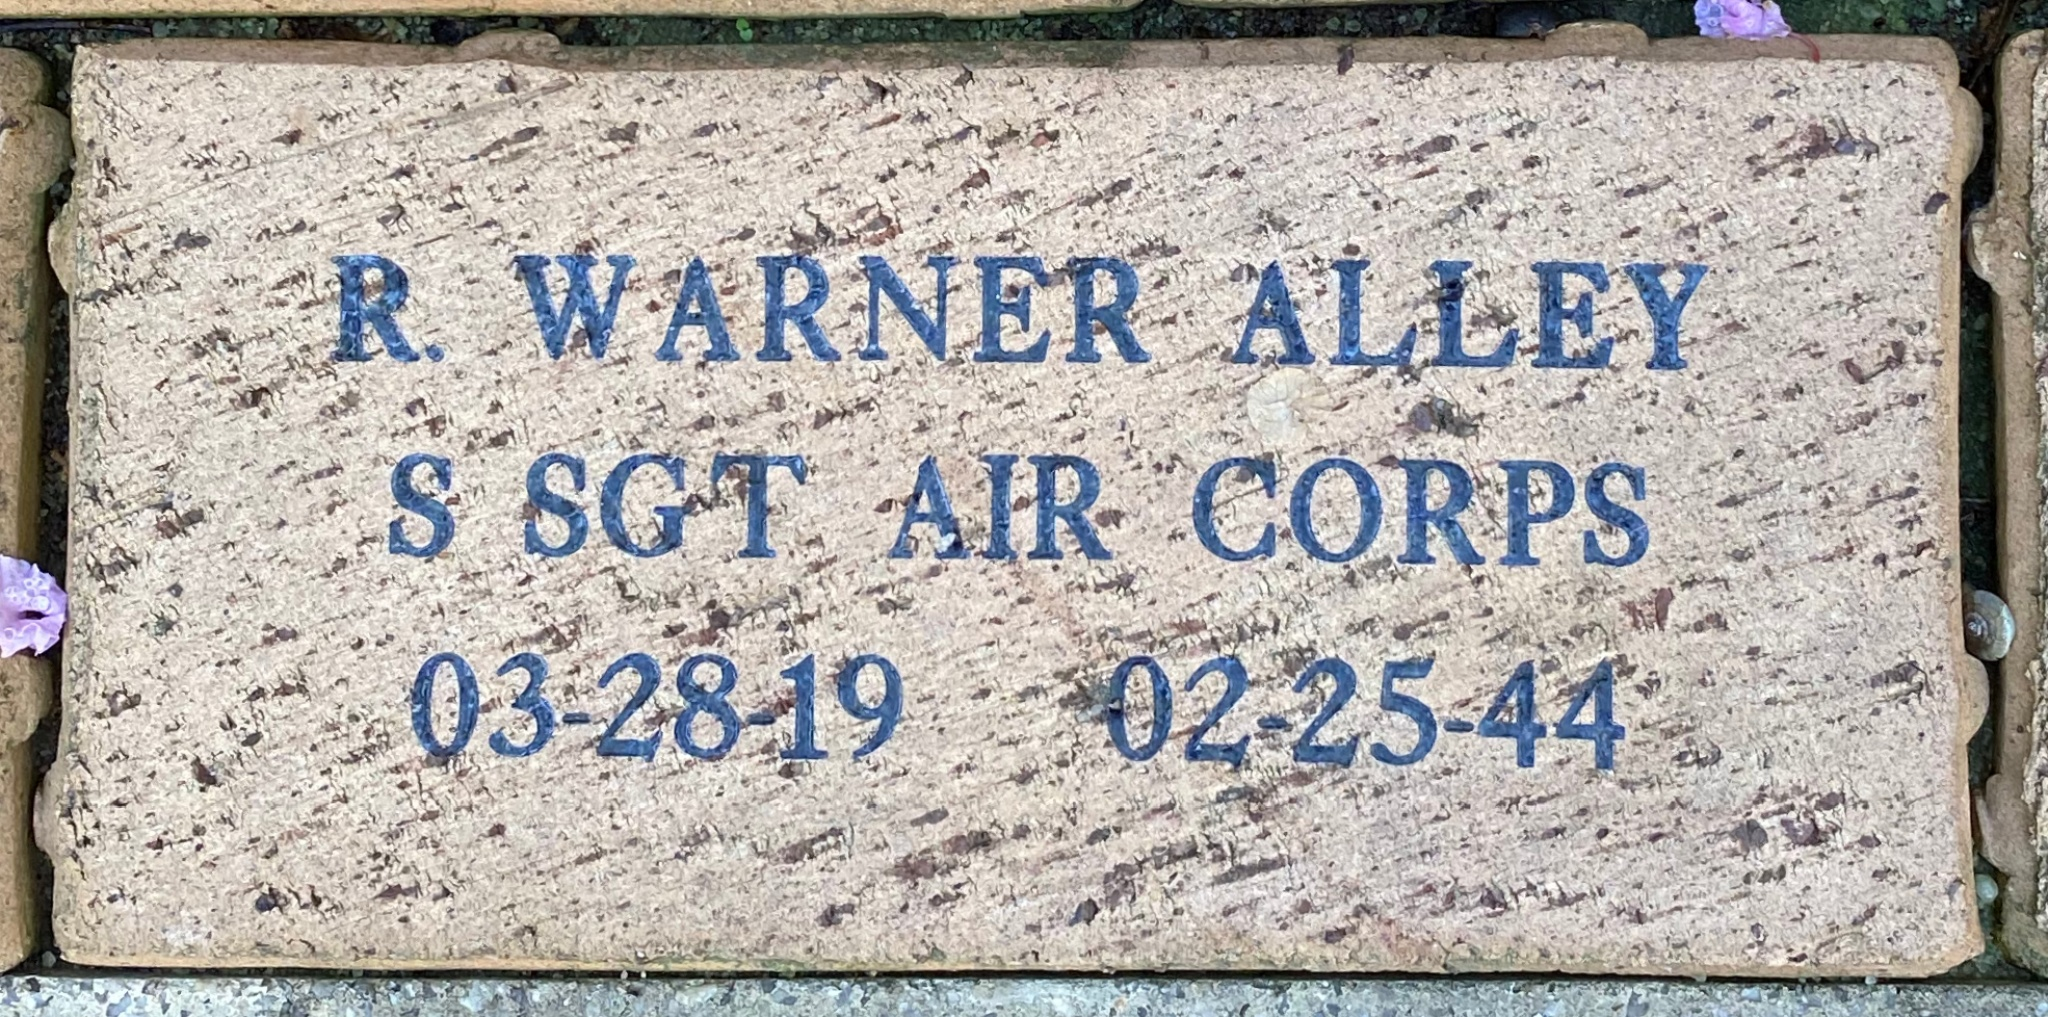 R. WARNER ALLEY S SGT AIR CORPS 03-28-19 02-25-44